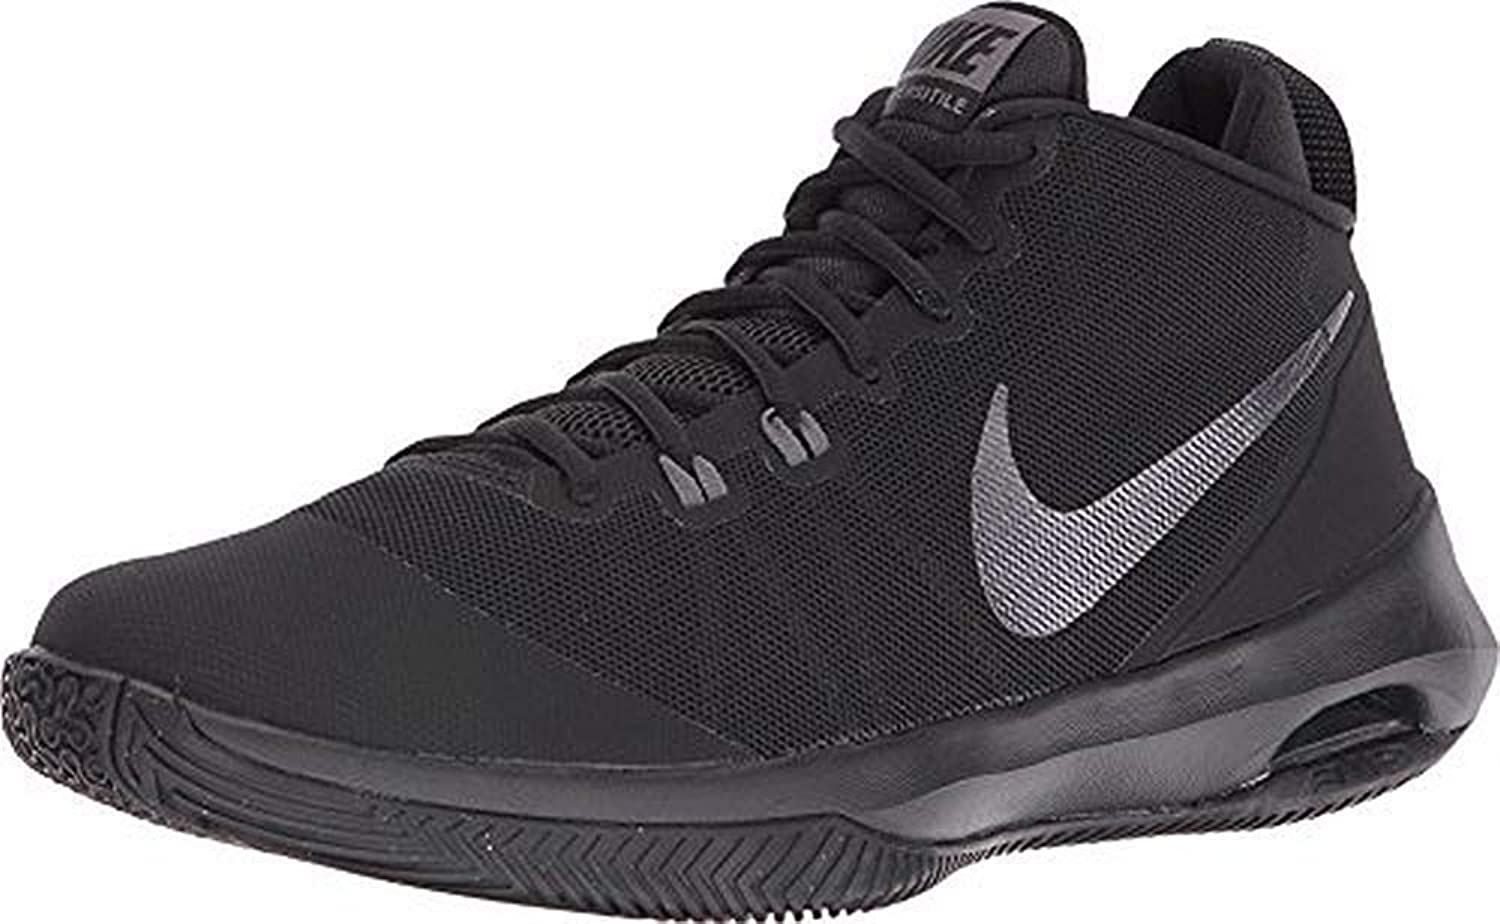 Nike Mens AIR Versitile NBK, Black MTLC Dark Grey-Dark Grey, 7